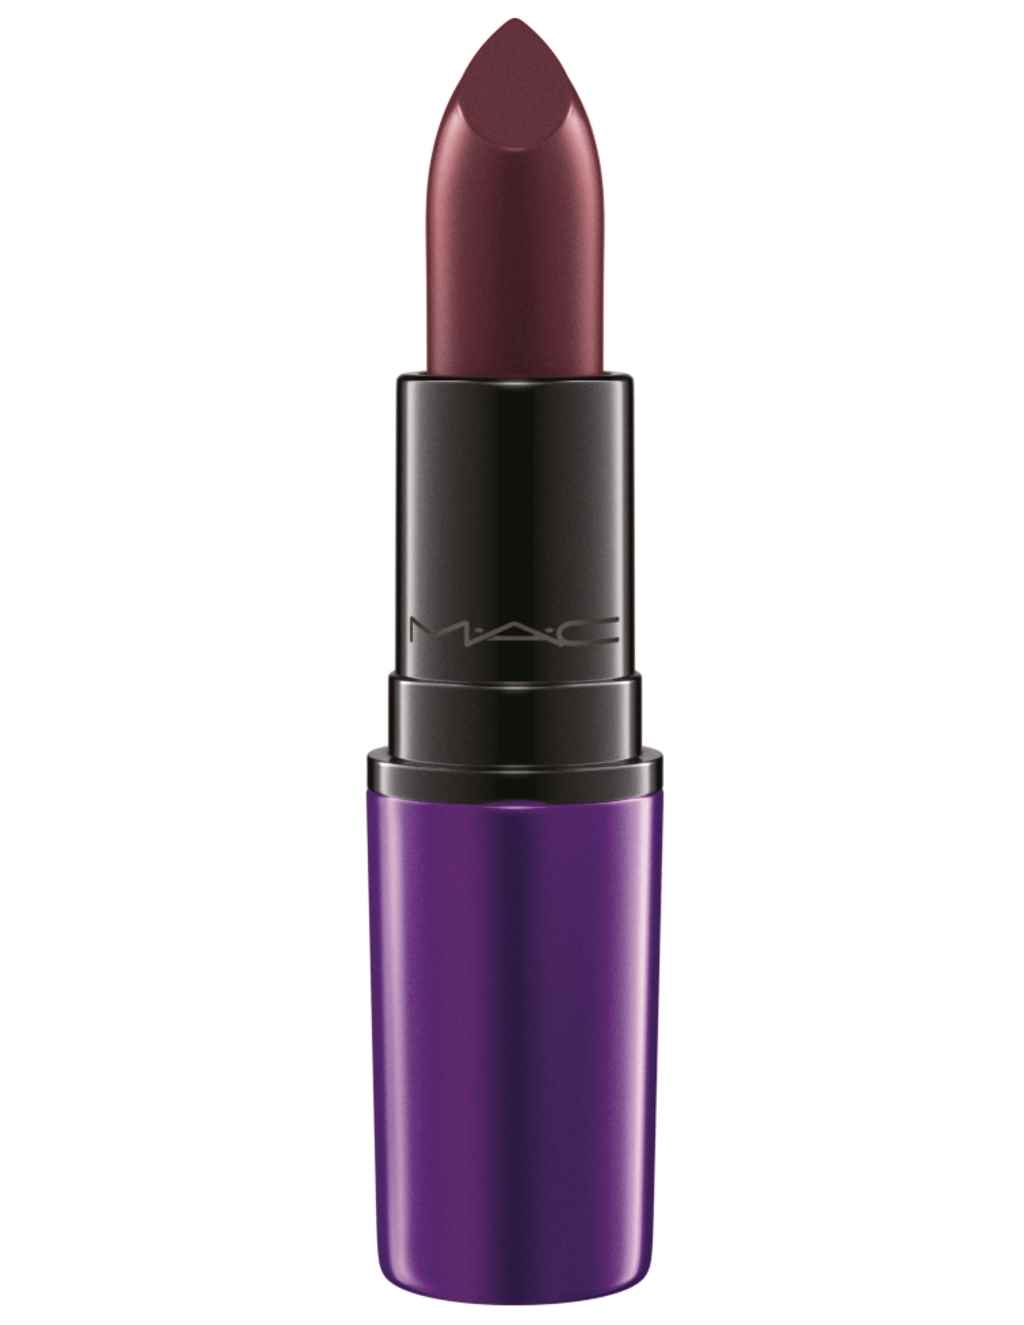 MAC_HolidayColour_MacMagicoftheNight_LipStick_DarkSide_300dpiCMYK